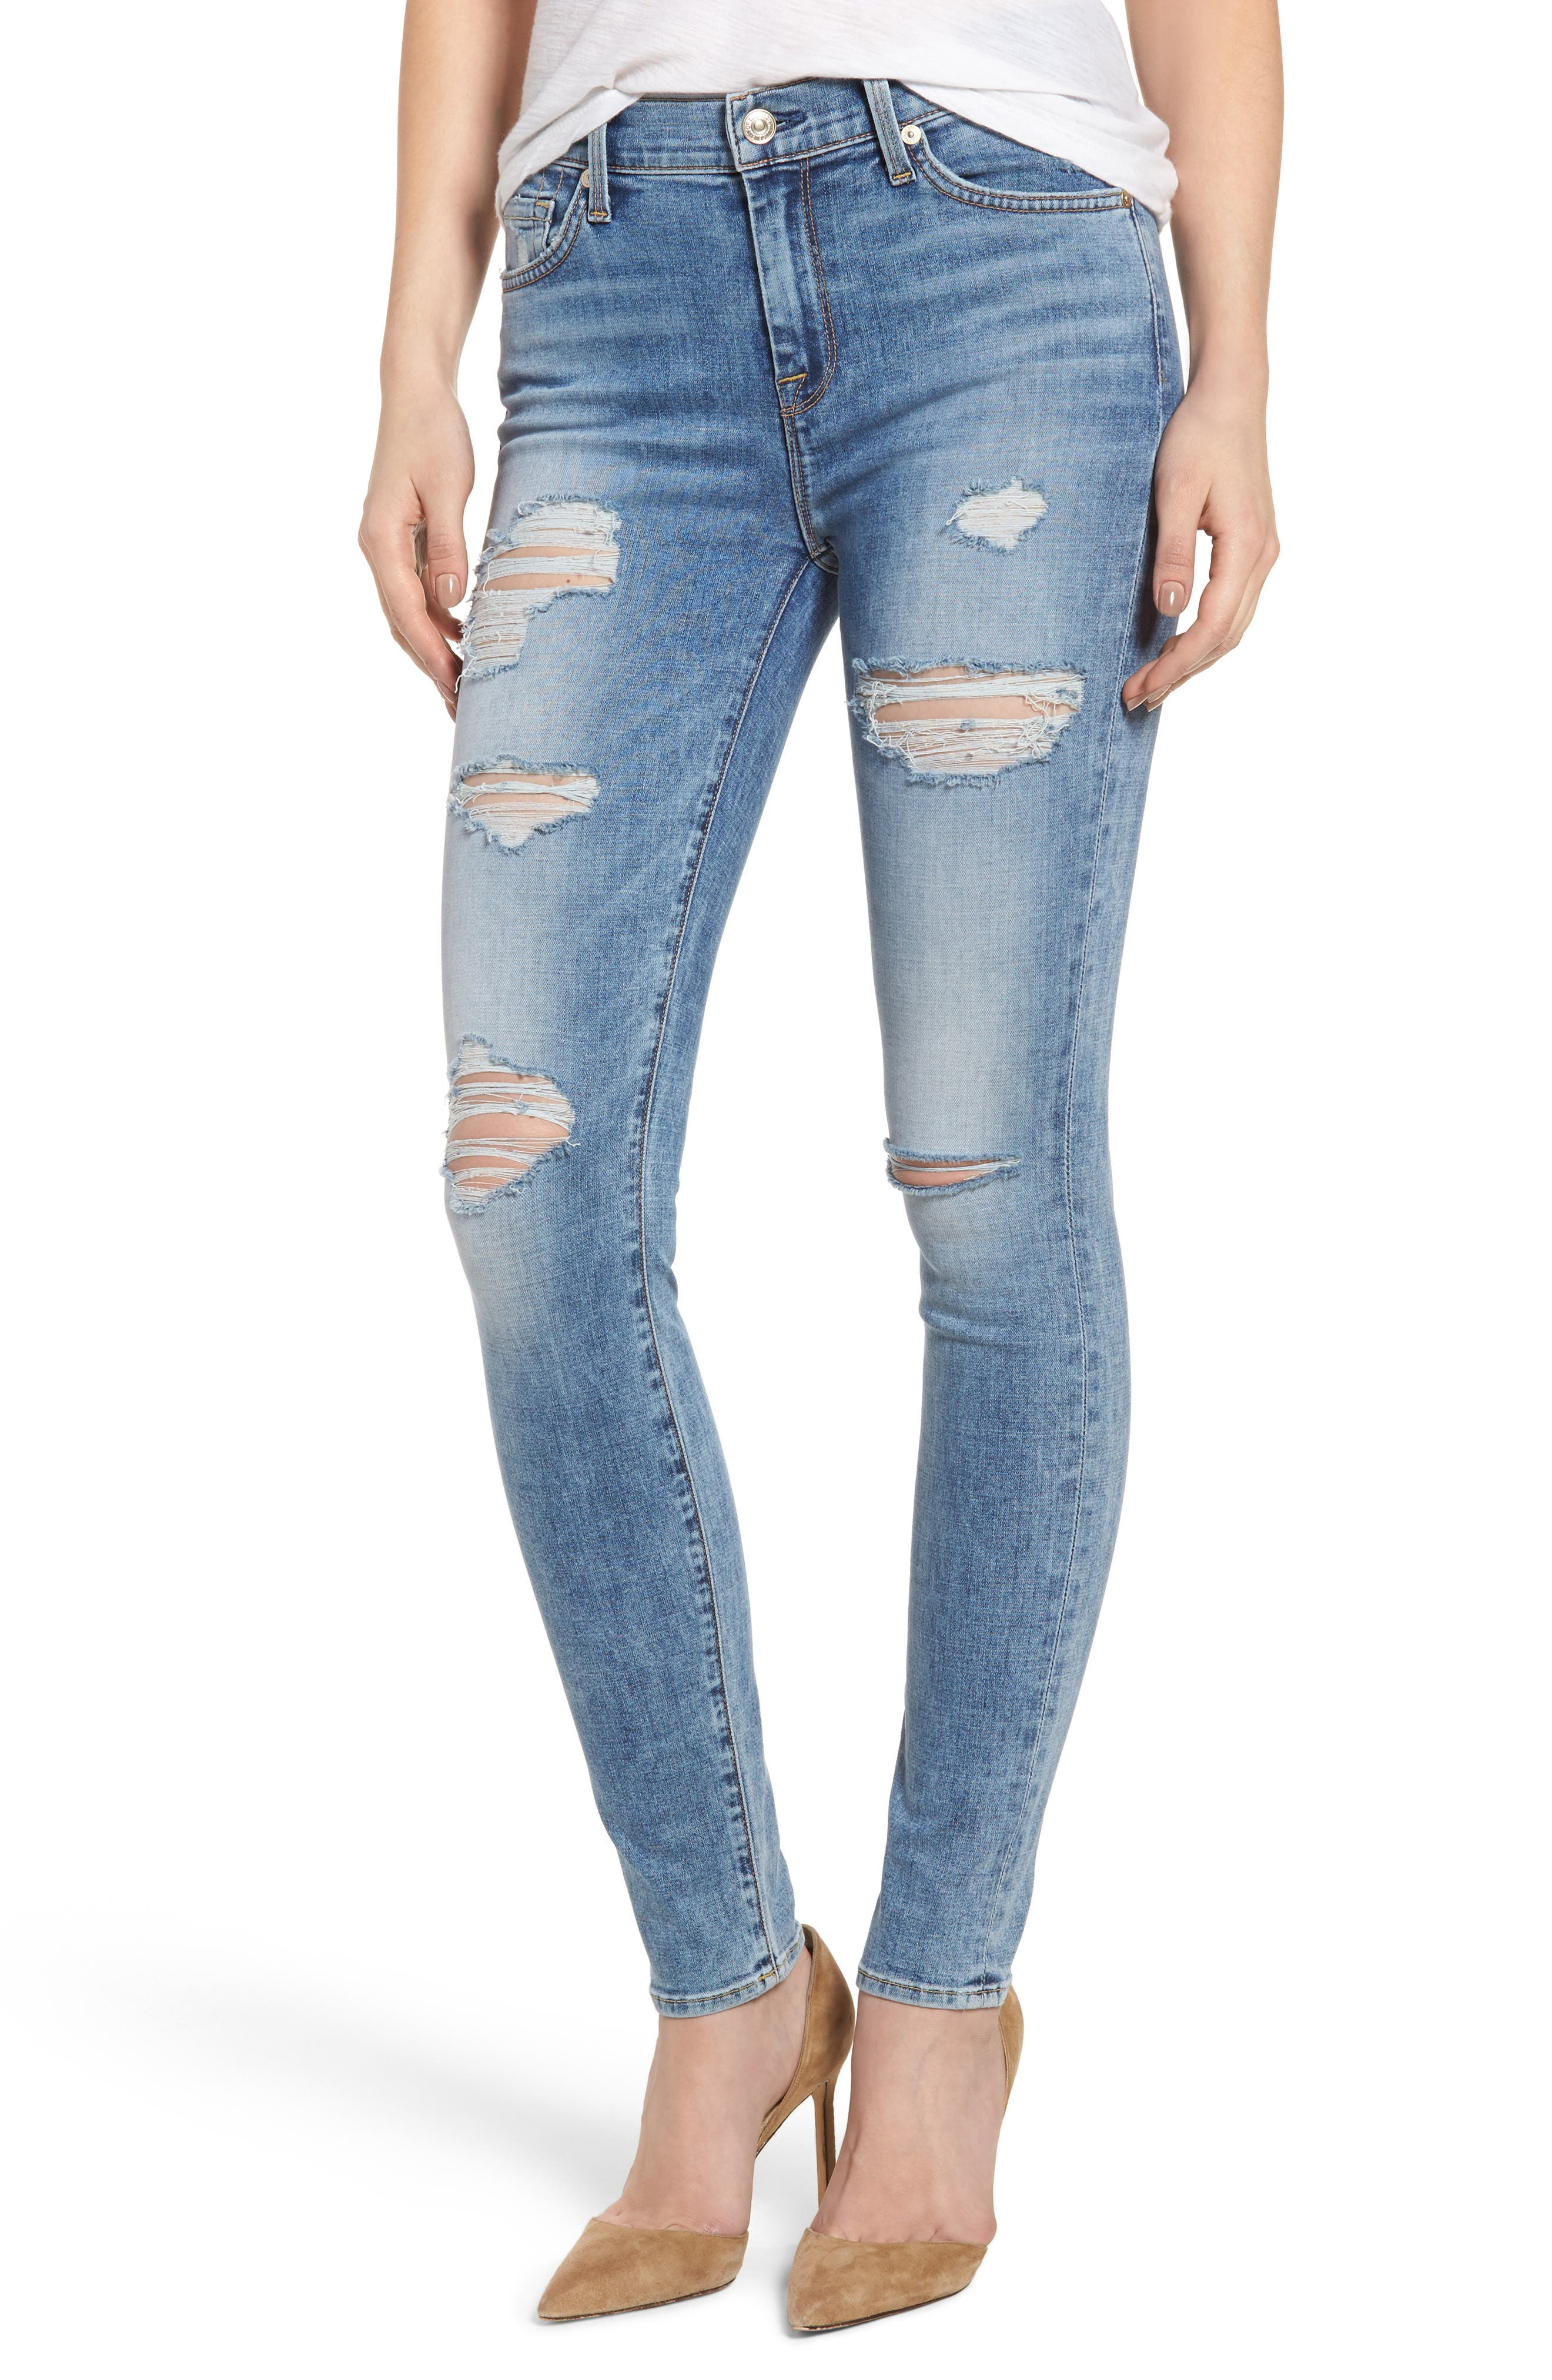 Alternate Image 1 Selected - 7 For All Mankind® Ripped High Waist Skinny Jeans (Light Lafayette)